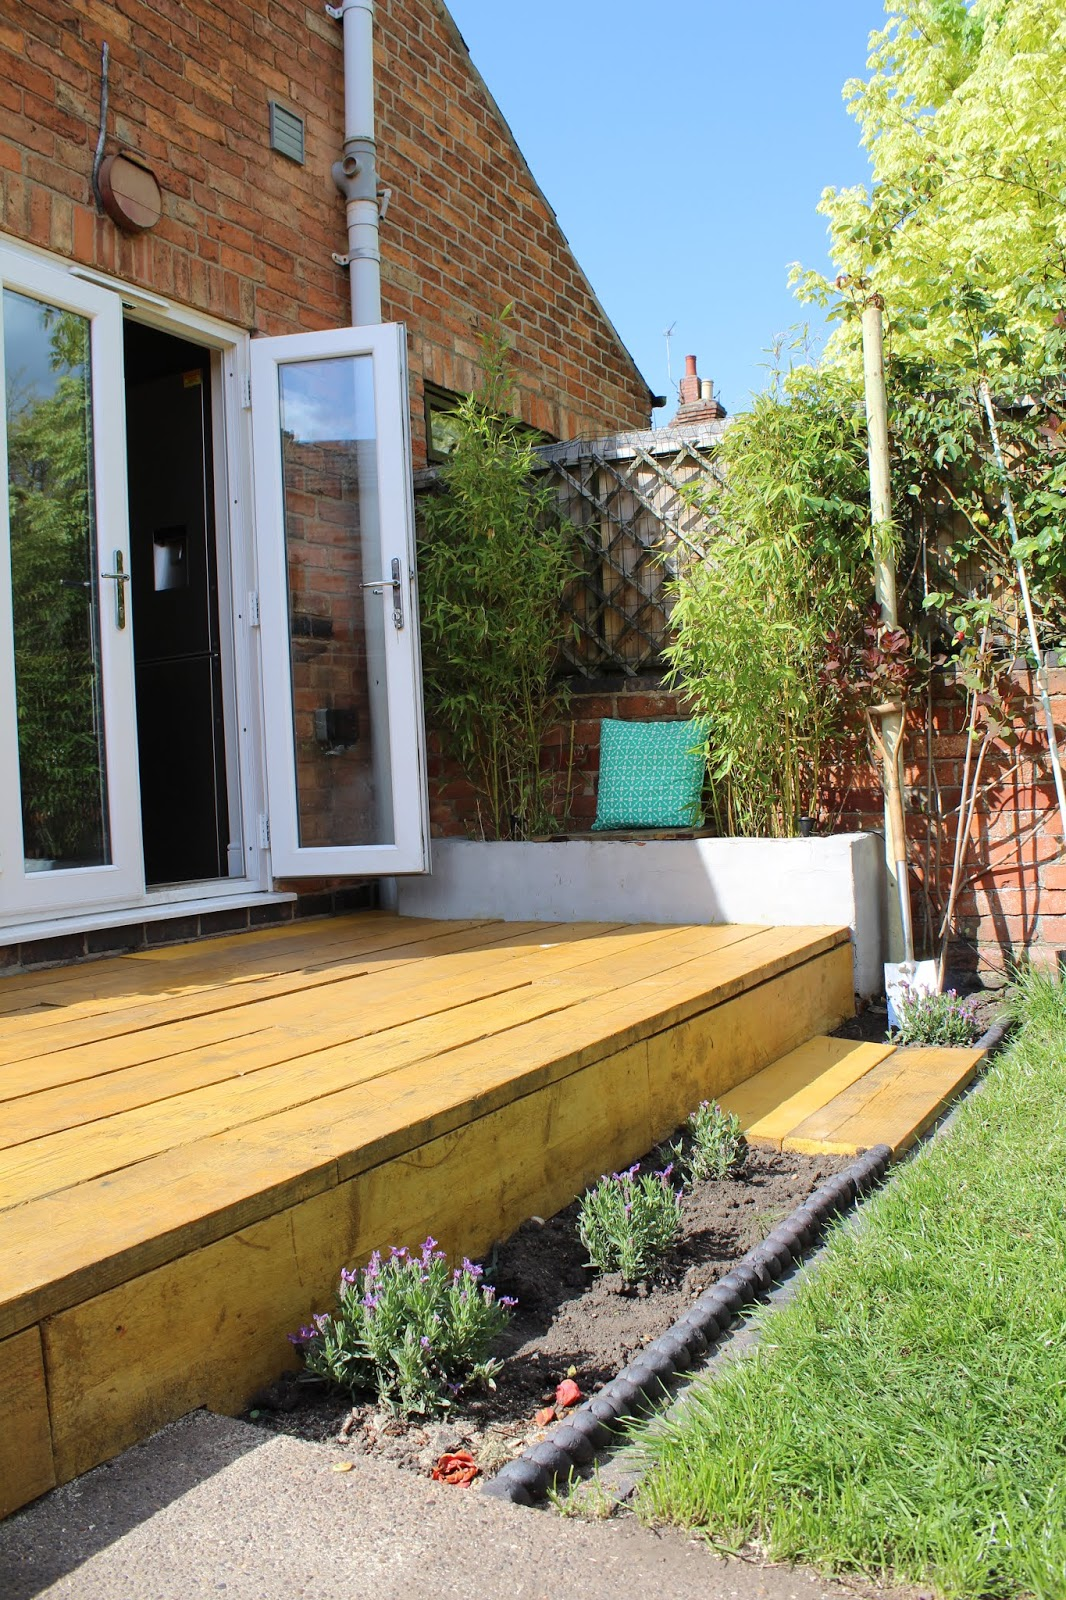 Scaffold Decking with Flower bed in front